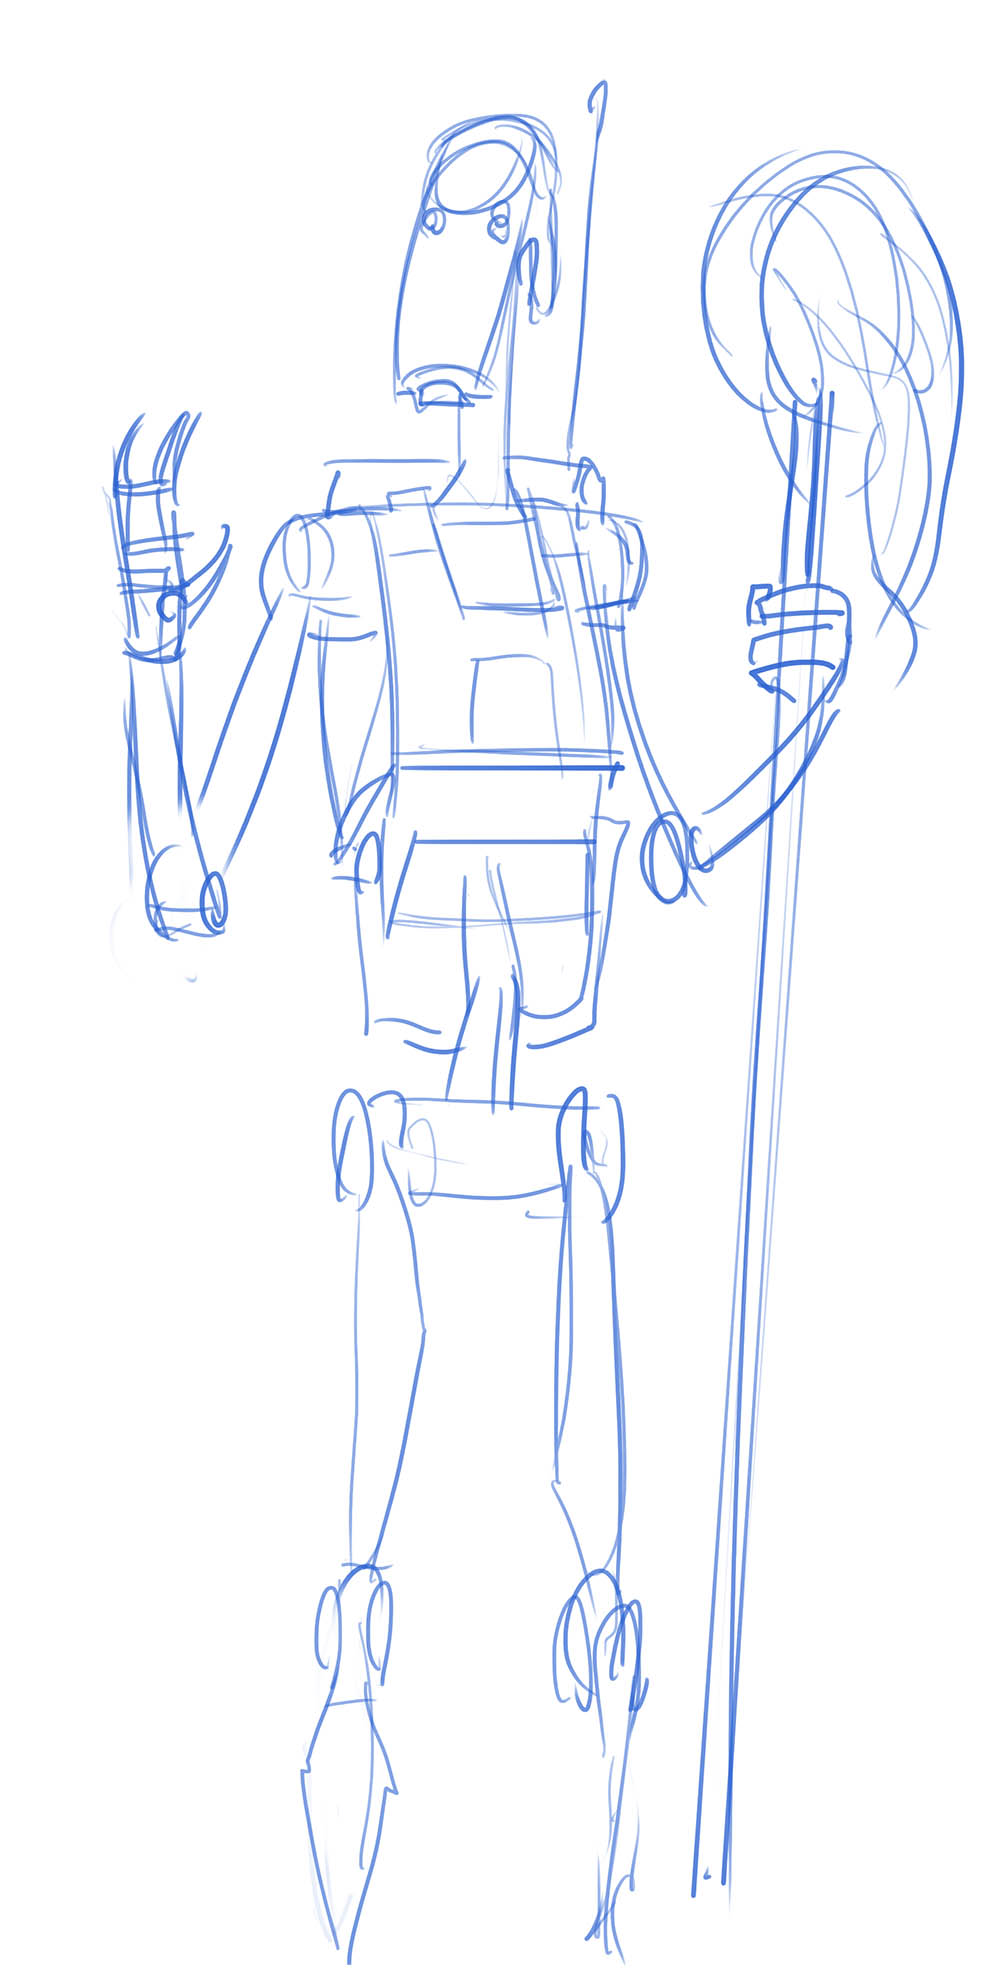 How To Draw A Battle Droid : battle, droid, Wars:, Droidography,, Sketch, Exclusive, StarWars.com